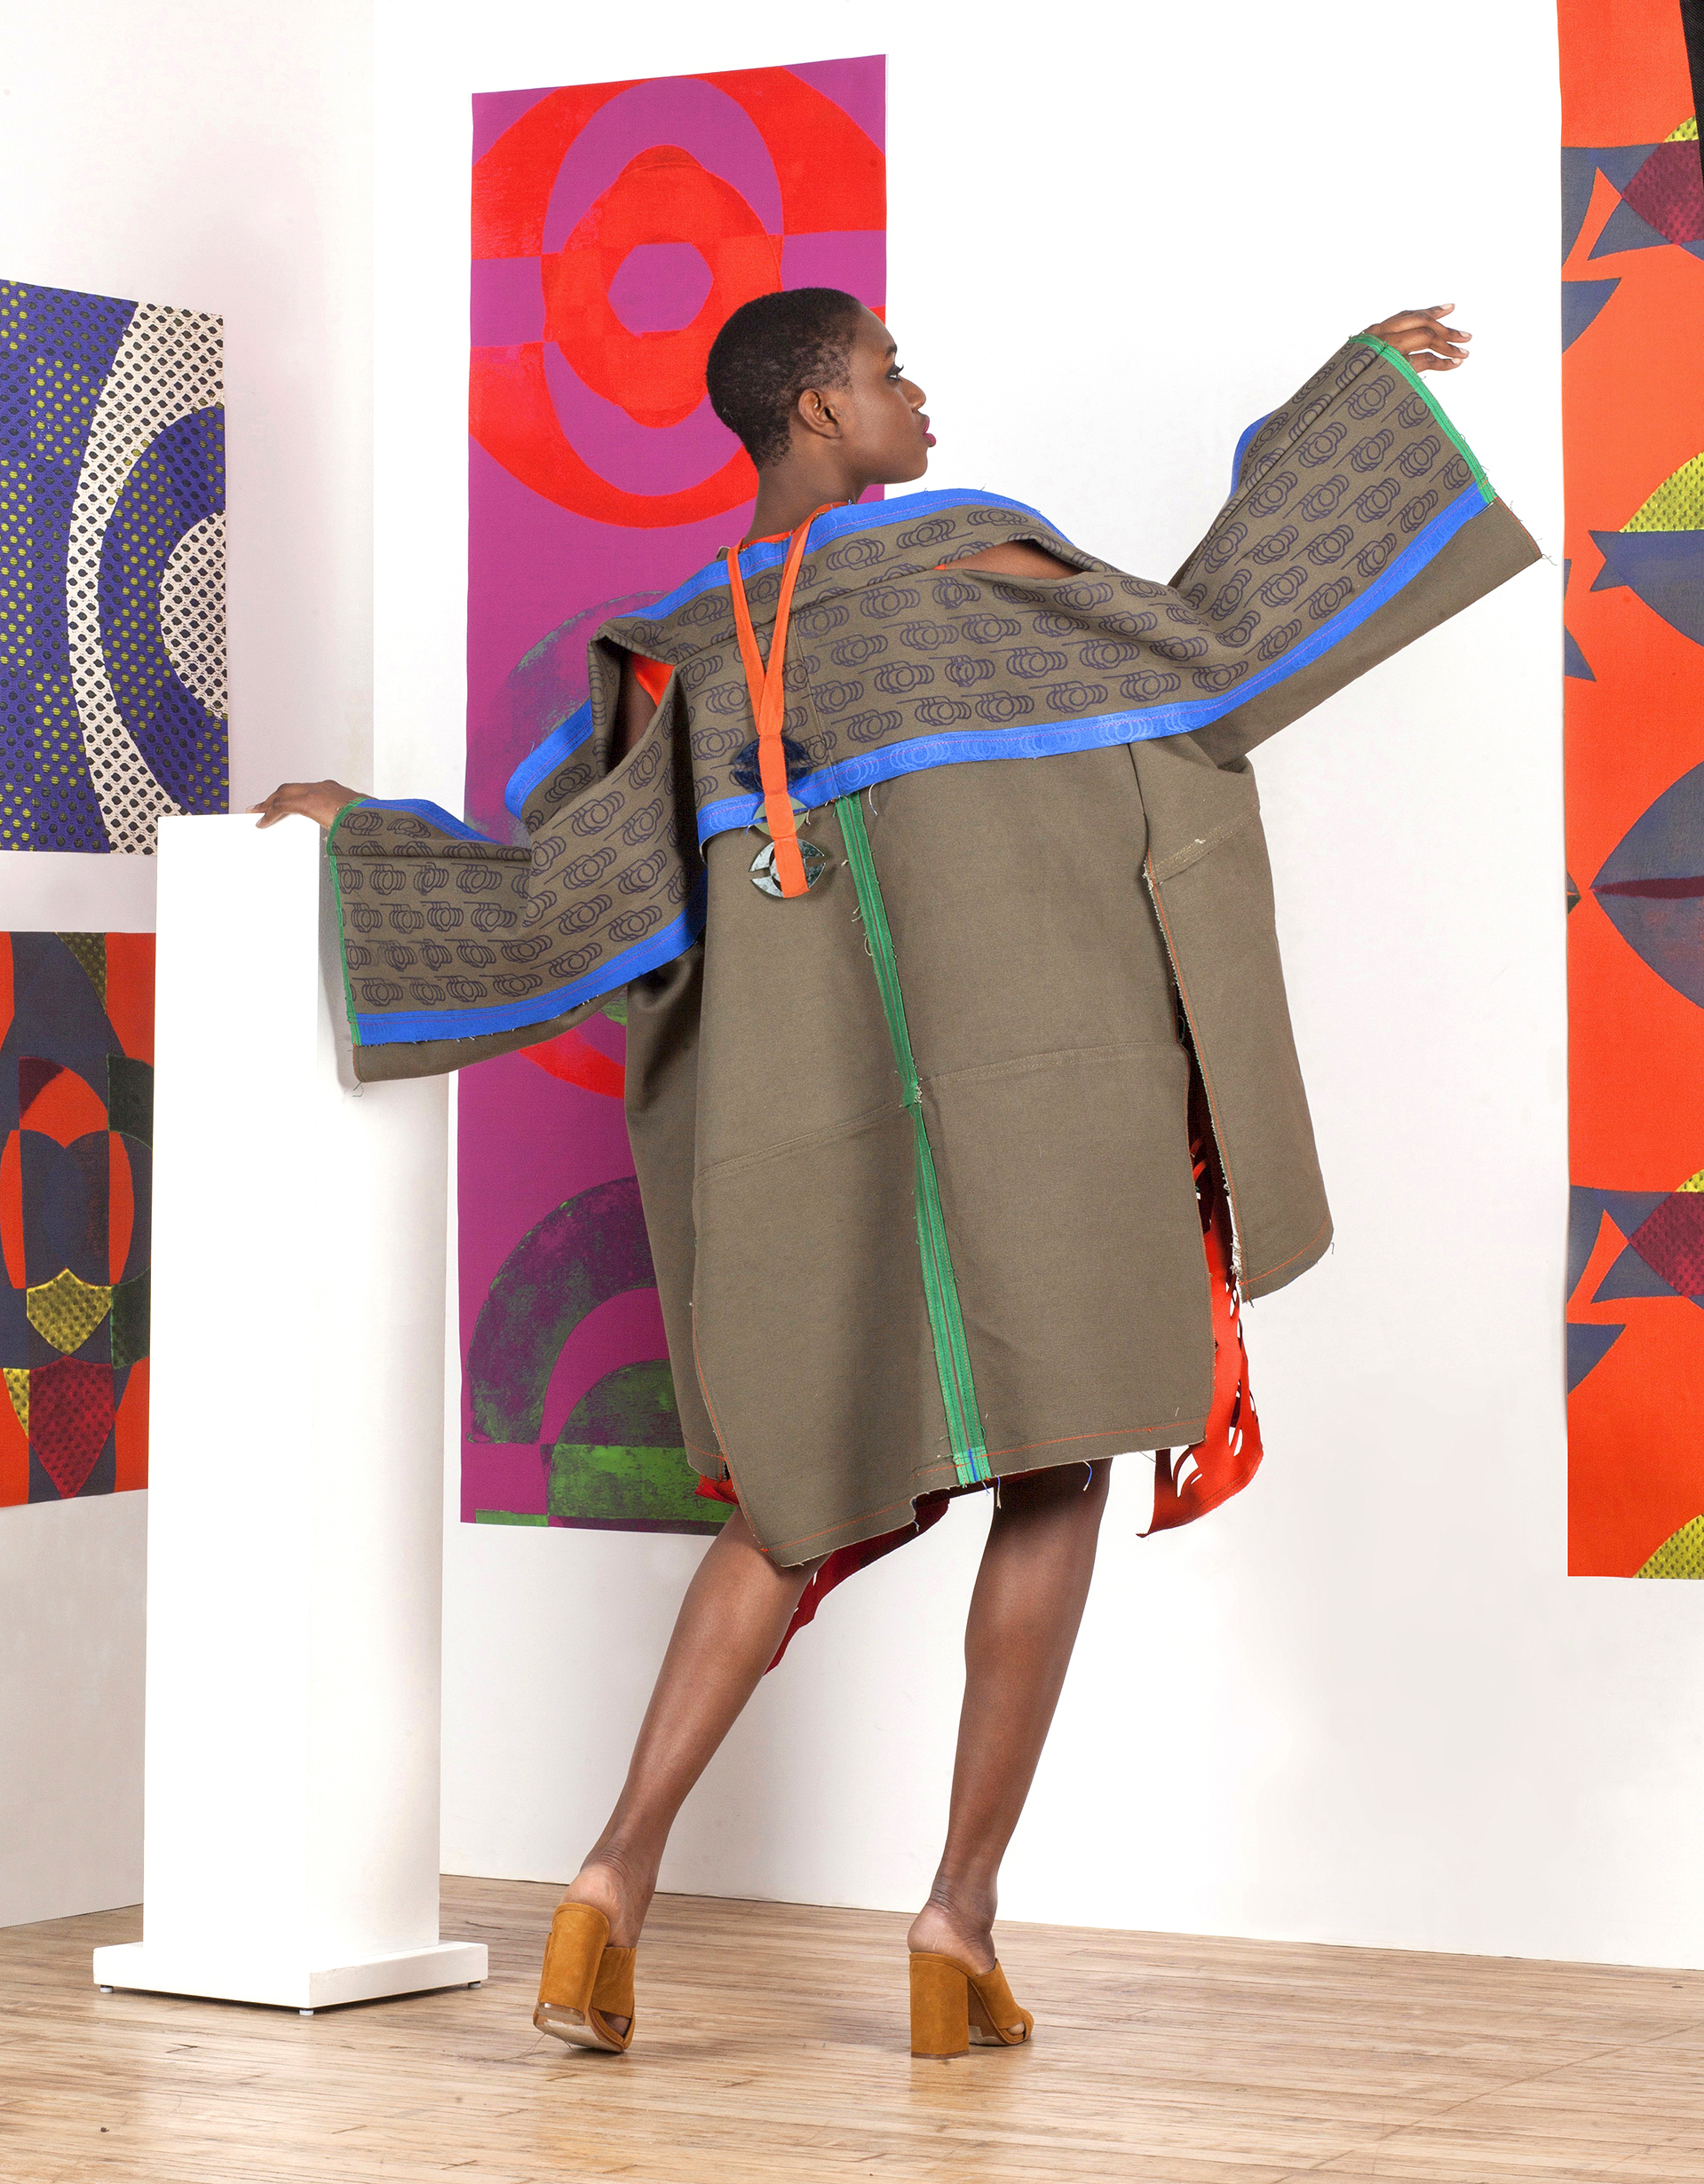 Canvas Screen Printed and Edge Painted Extended Seam Allowance Jacket made from Vintage Army Duffle Bags.   Underneath is the Block Printed and Laser Cut Orange Double Faced Poly Satin Dress. Laser Cut Earrings.